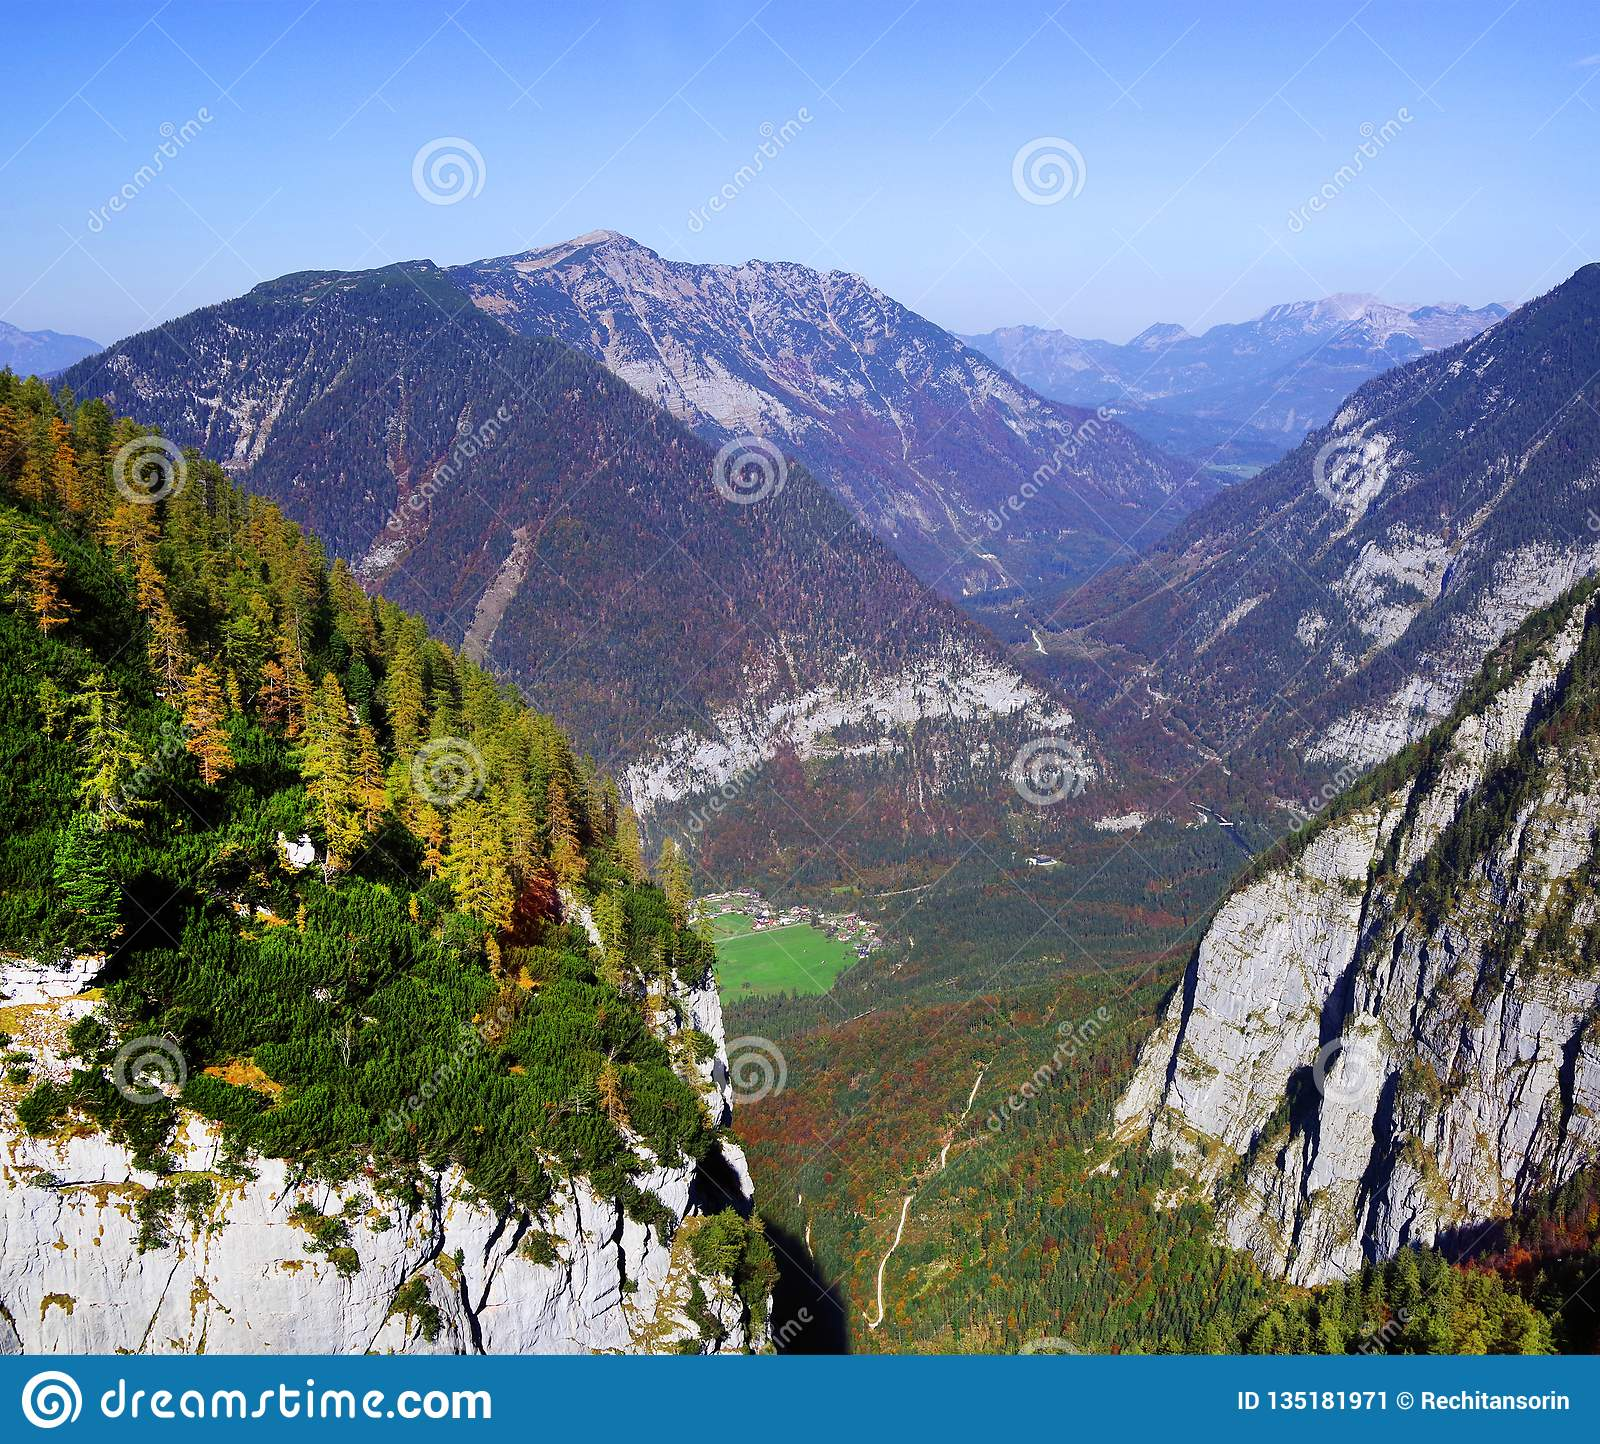 Scenic autumn landscape of the Austrian Alps from the Krippenstein Dachstein cable car.